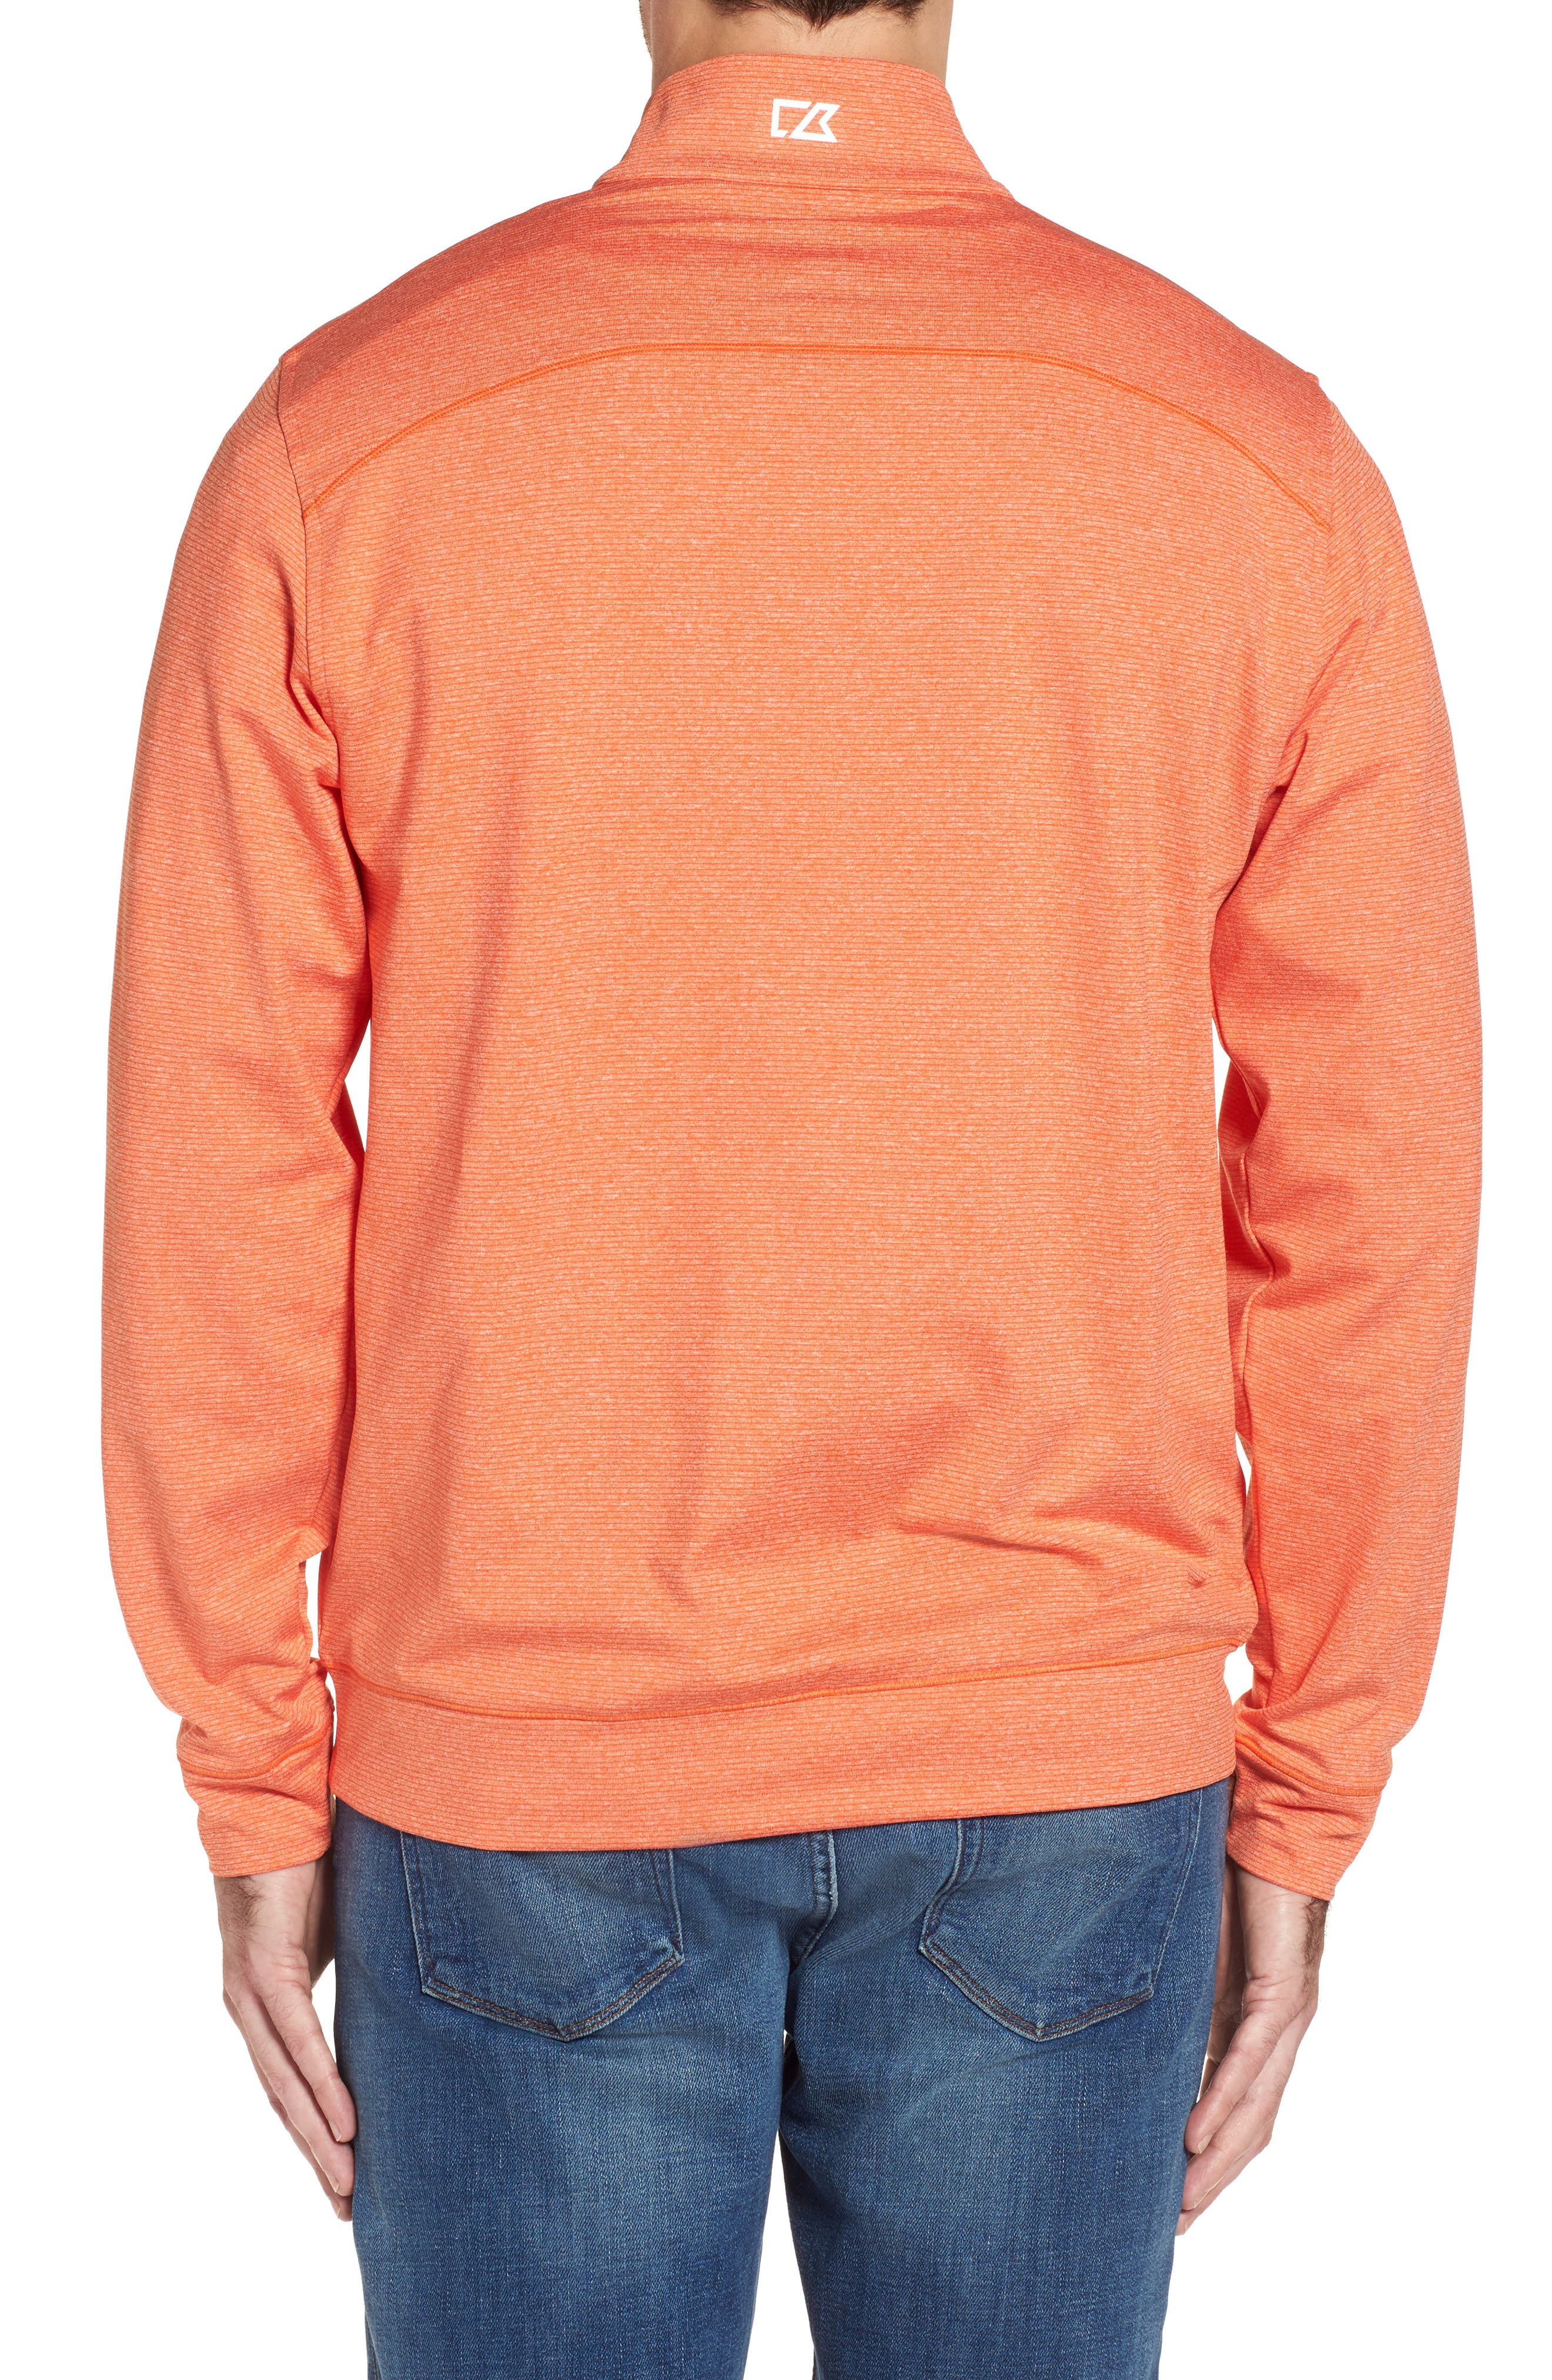 Shoreline - Denver Broncos Half Zip Pullover,                             Alternate thumbnail 2, color,                             816